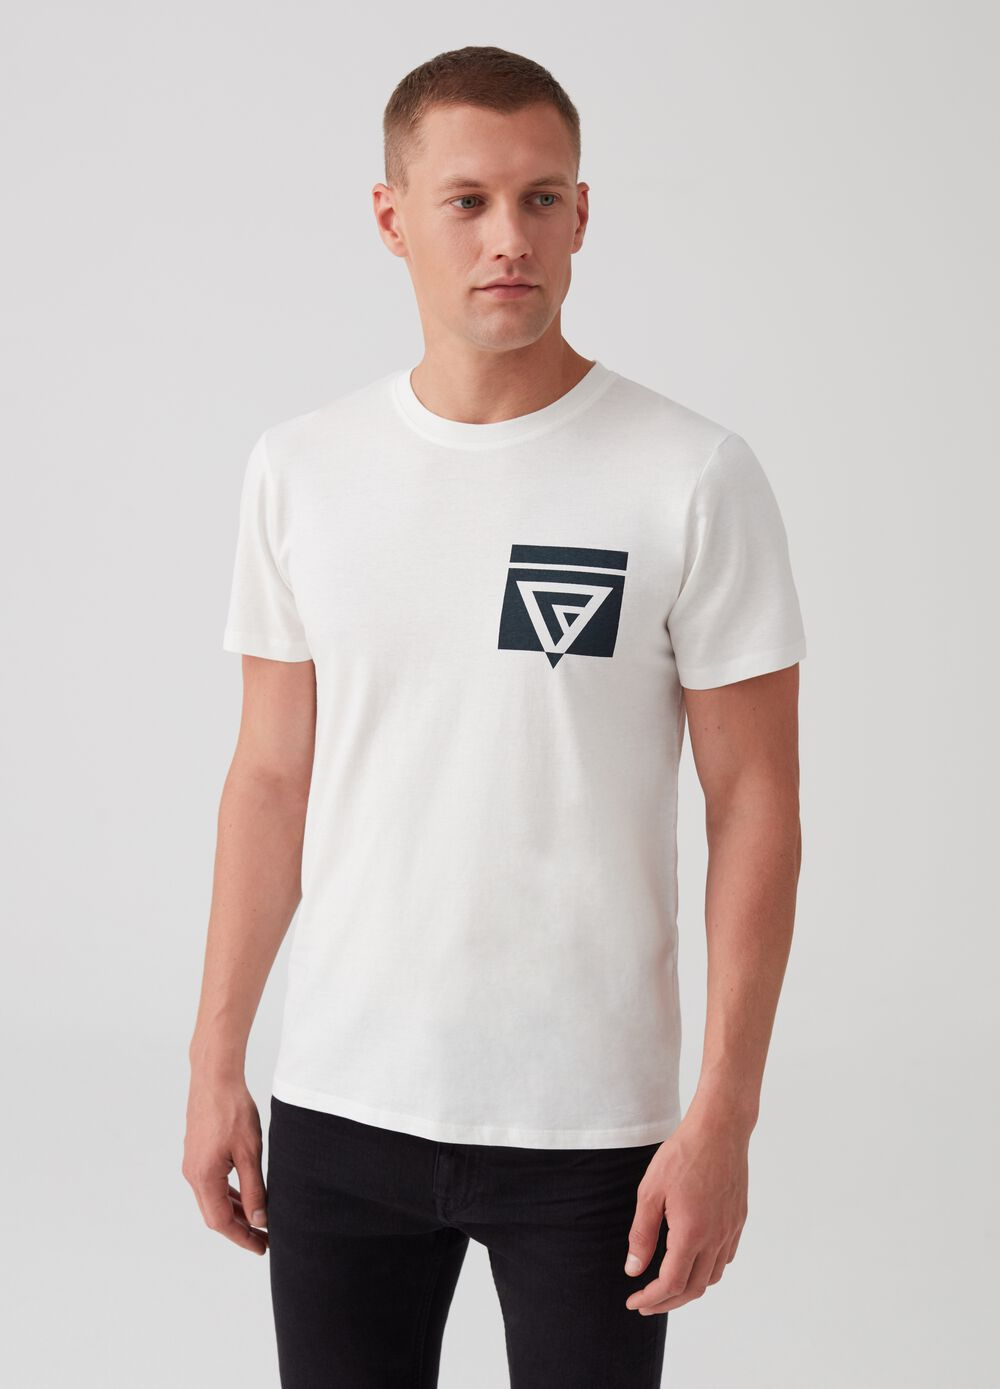 100% cotton T-shirt with geometric print